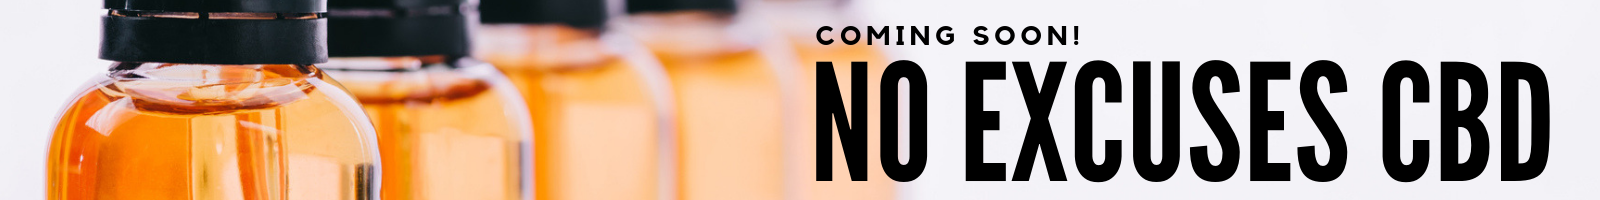 No Excuses CBD - Coming Soon!